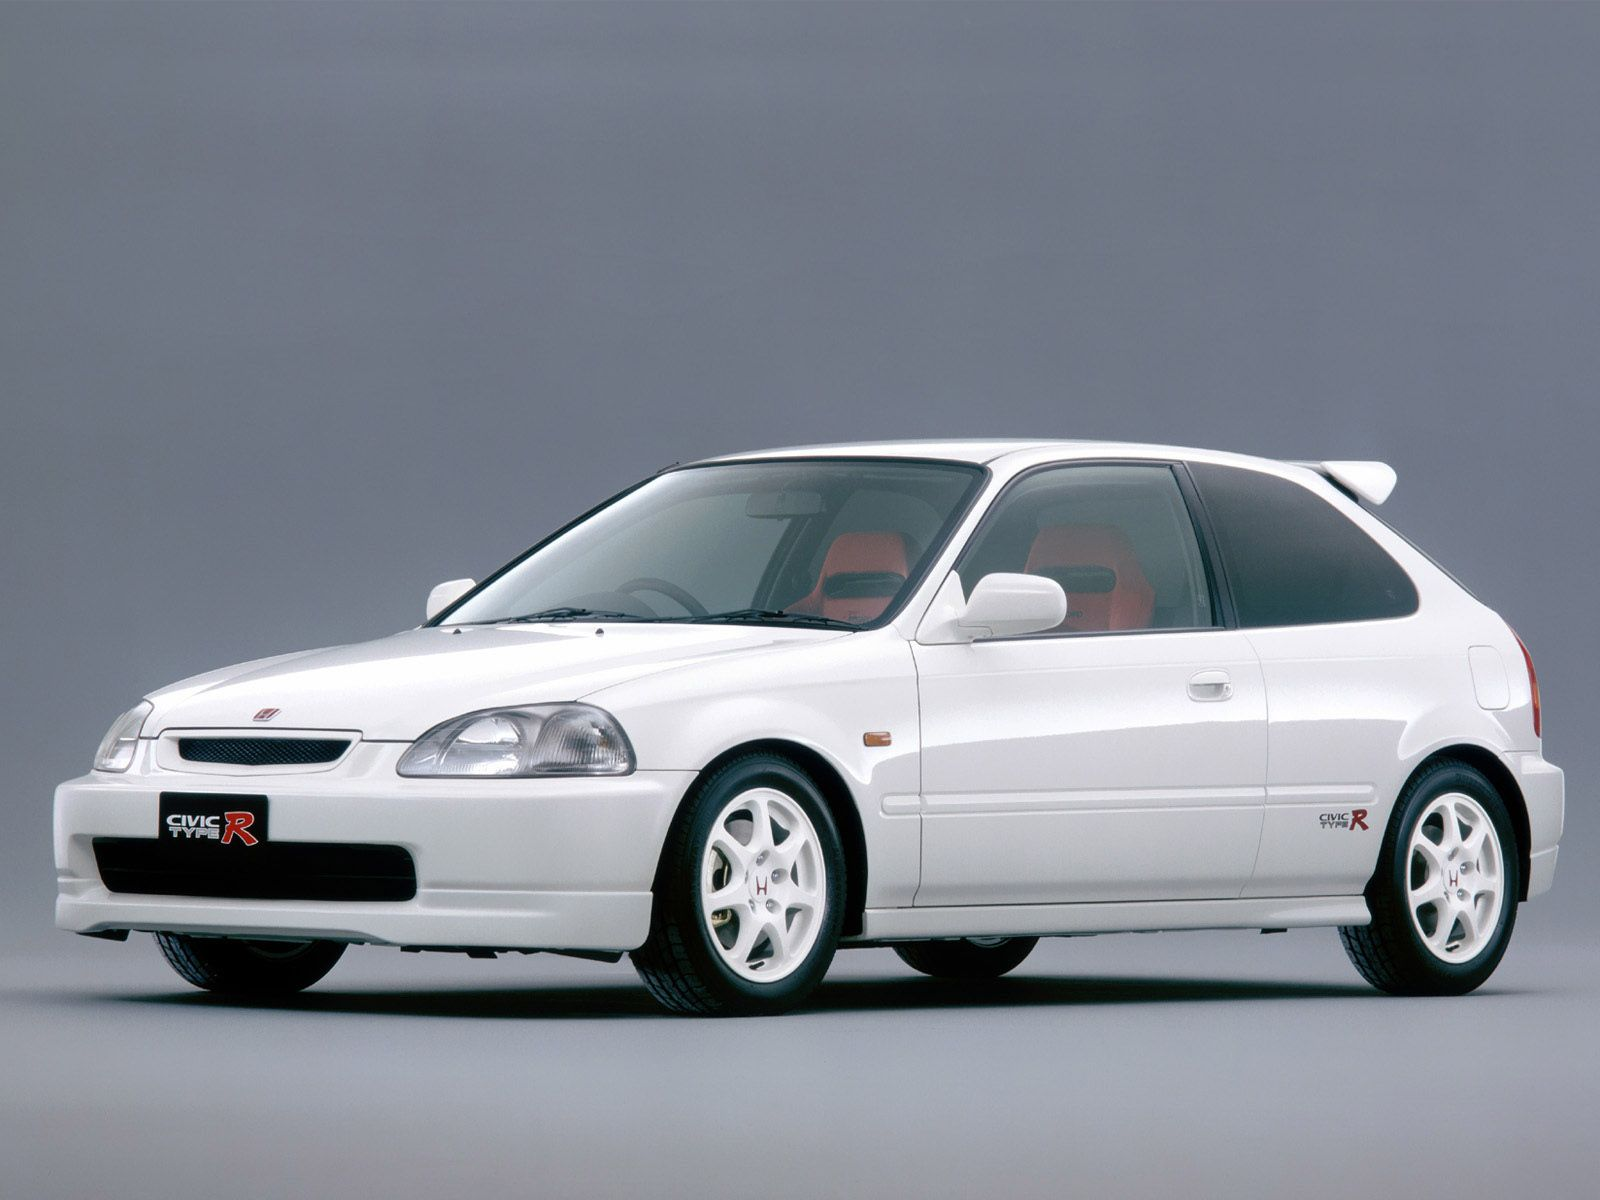 The honda civic type r classic and forbidden in the united states because